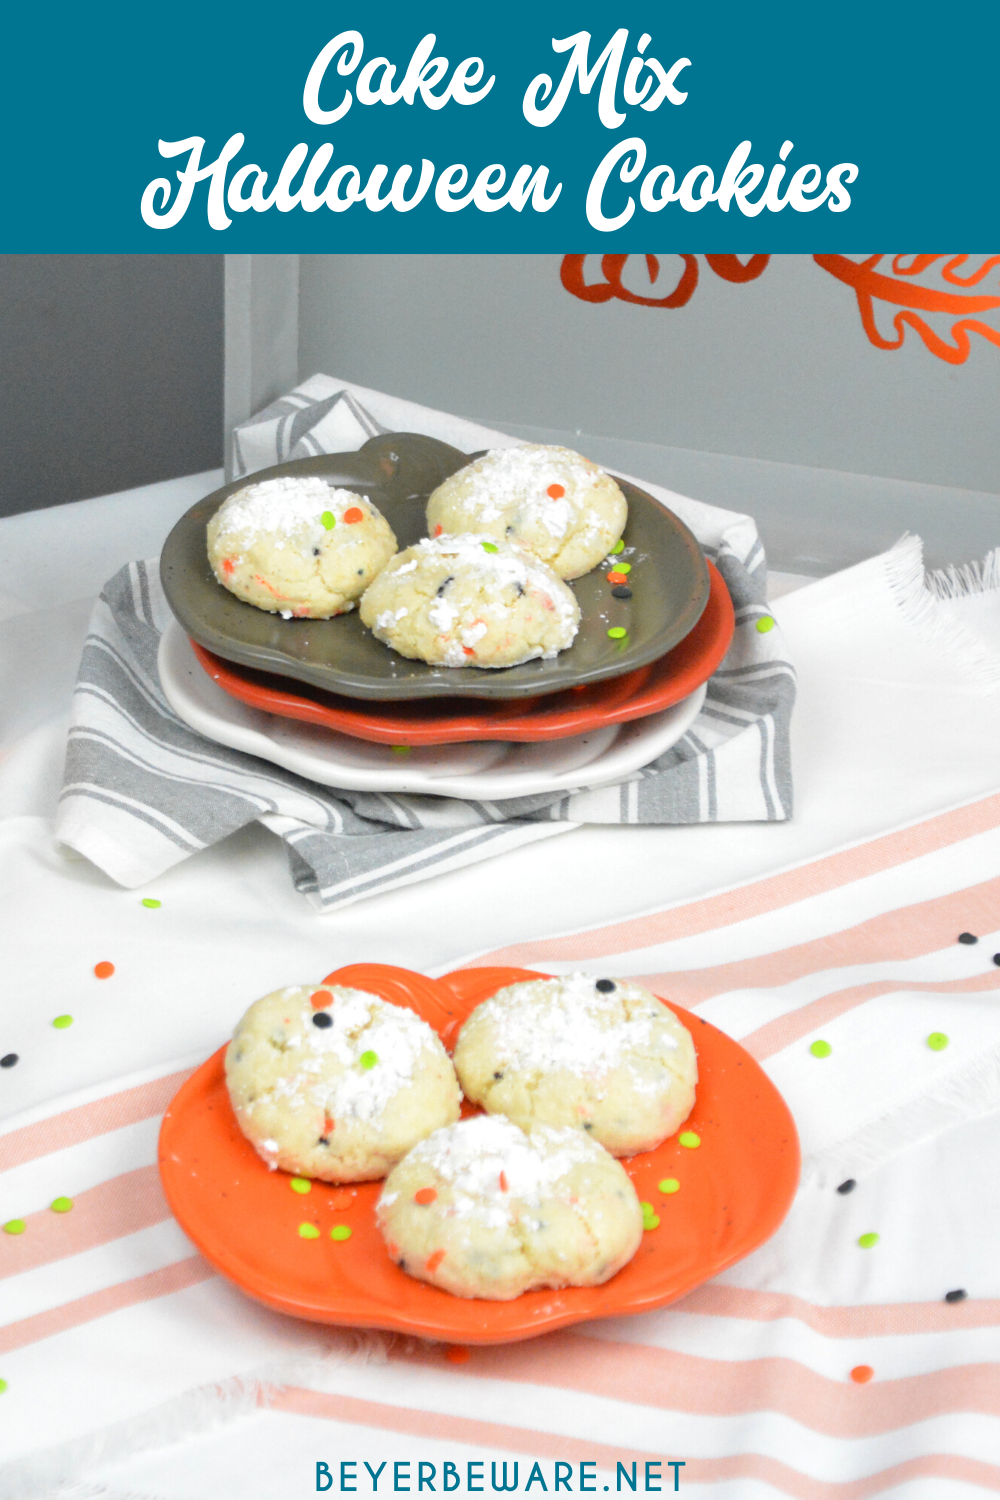 Cake Mix Halloween Cookies are a sweet combination of the funfetti cake mix with cream cheese, butter, vanilla, and eggs to form the softest cookies everyone will love.